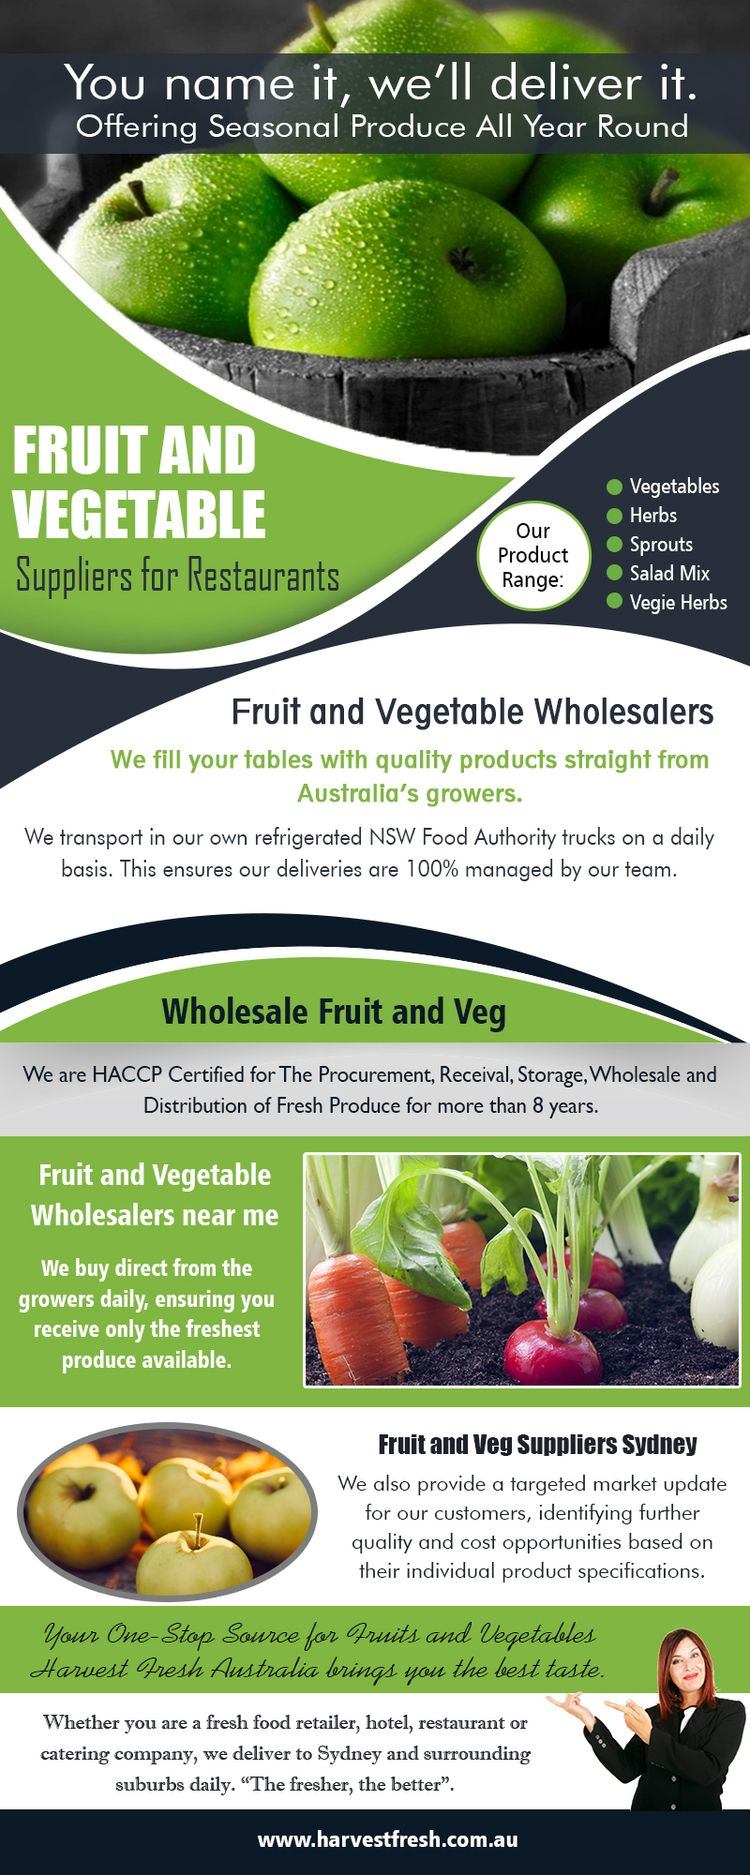 Fruit Vegetable Suppliers Resta - wholesalefruitveg | ello